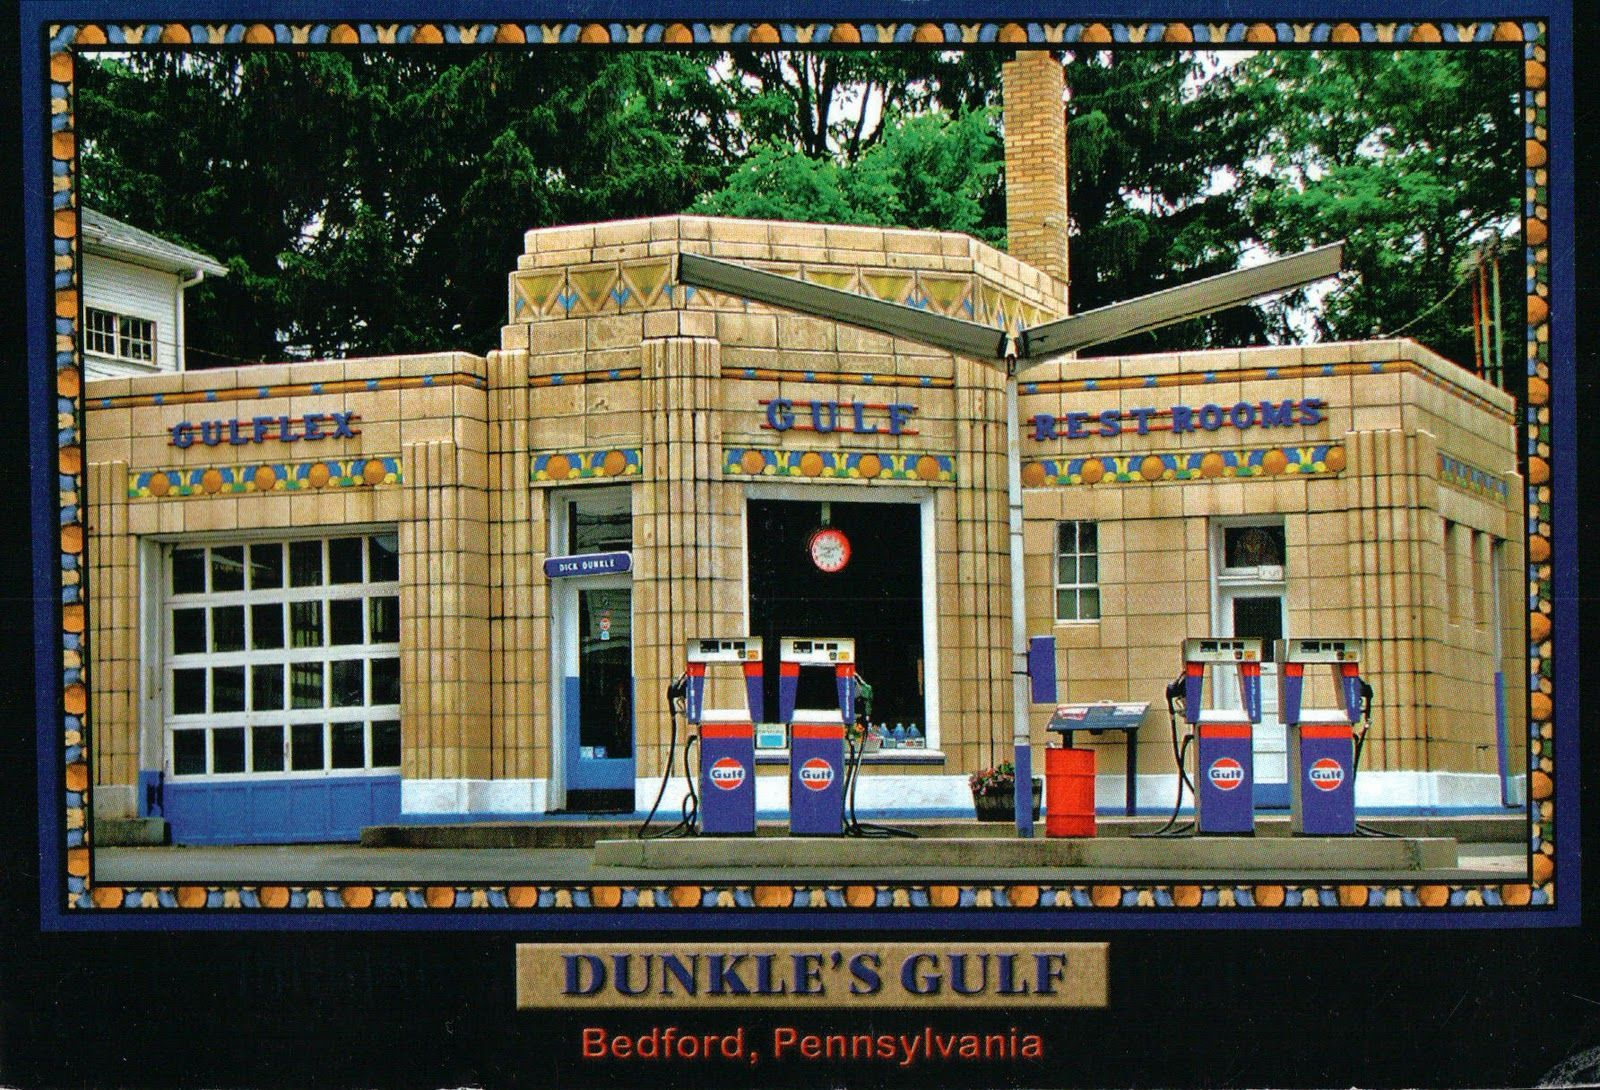 Dunkle's Gulf. Bedford, Pennsylvania Old gas stations